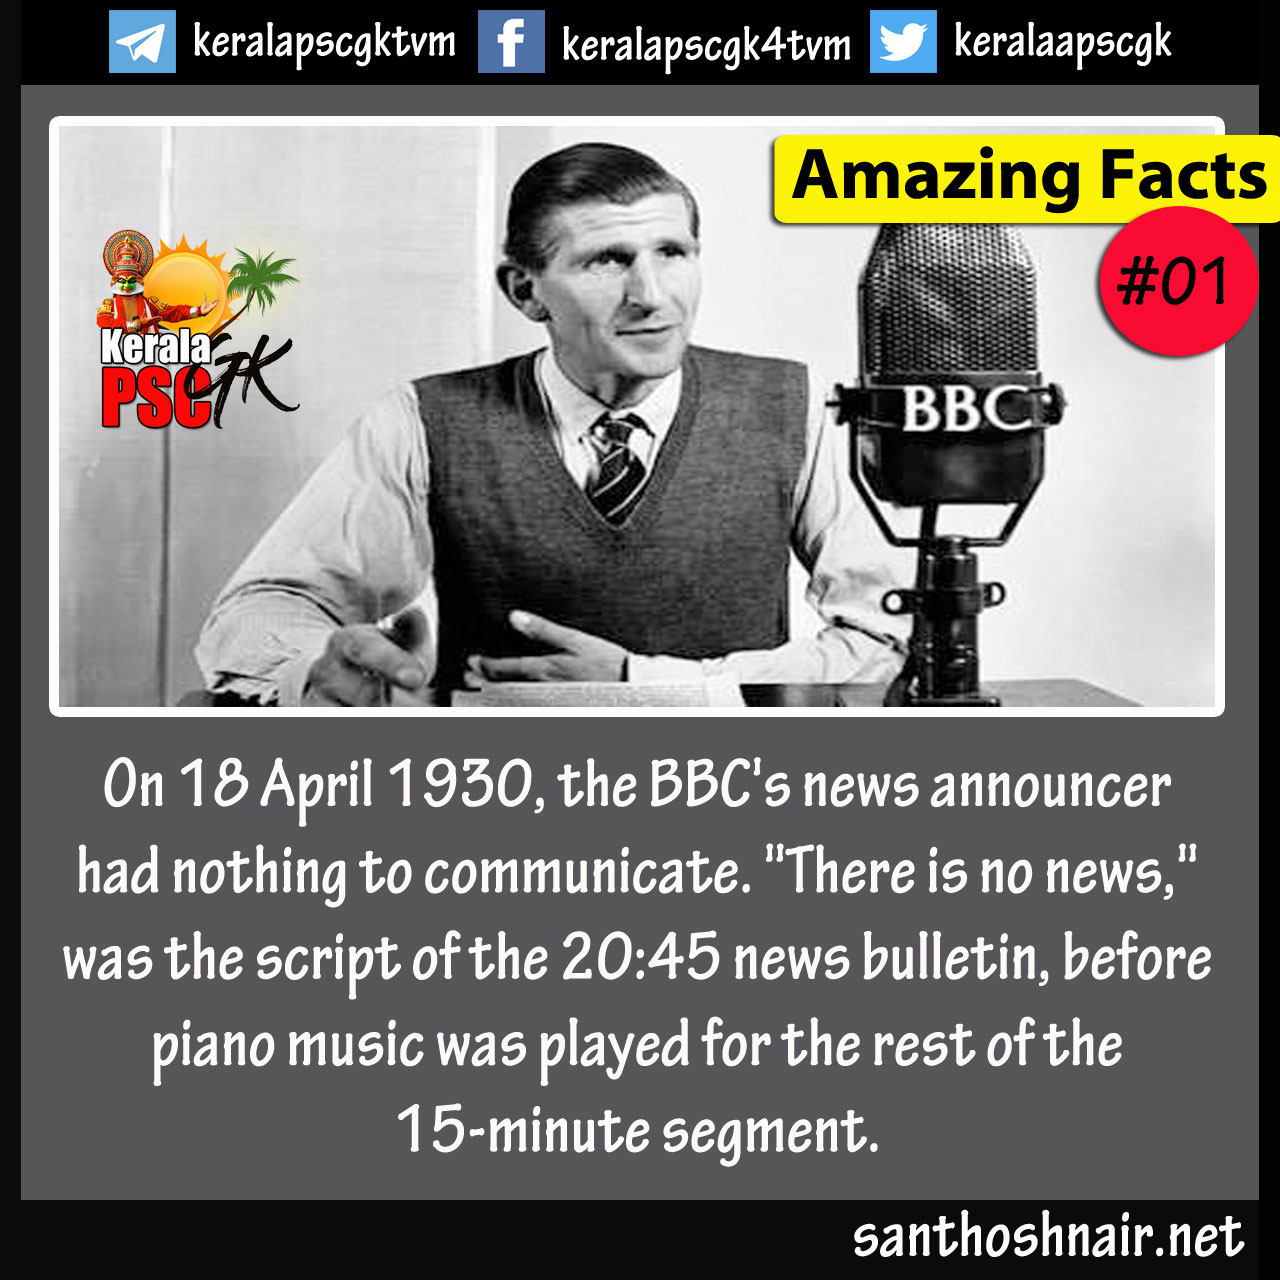 Amazing Facts #01 - There is no News on BBC